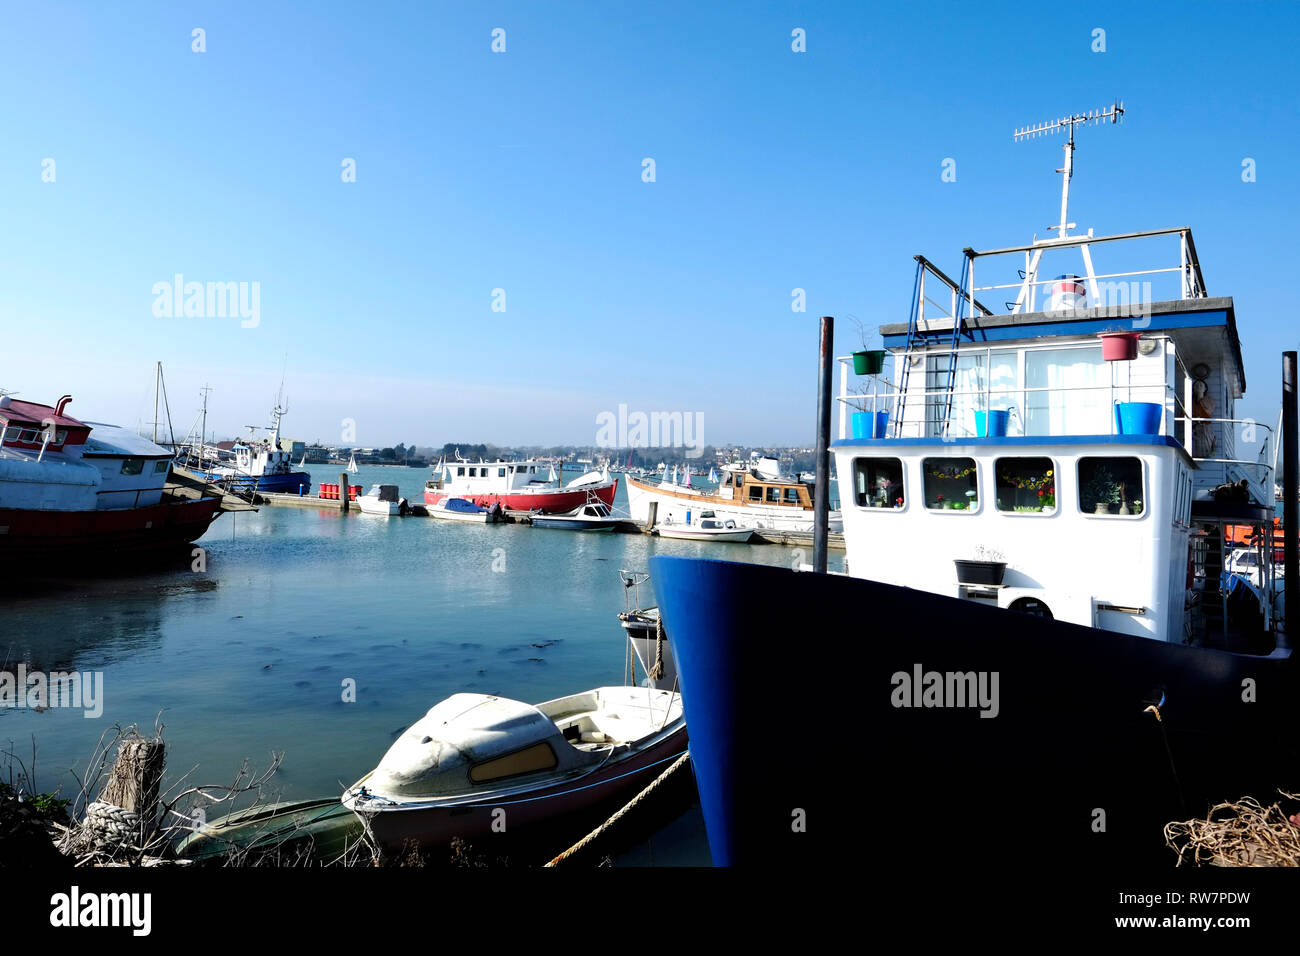 View from the road of houseboats at high tide moored in Bembridge Harbour, Bembridge, Isle of Wight, England, Britain, UK. - Stock Image